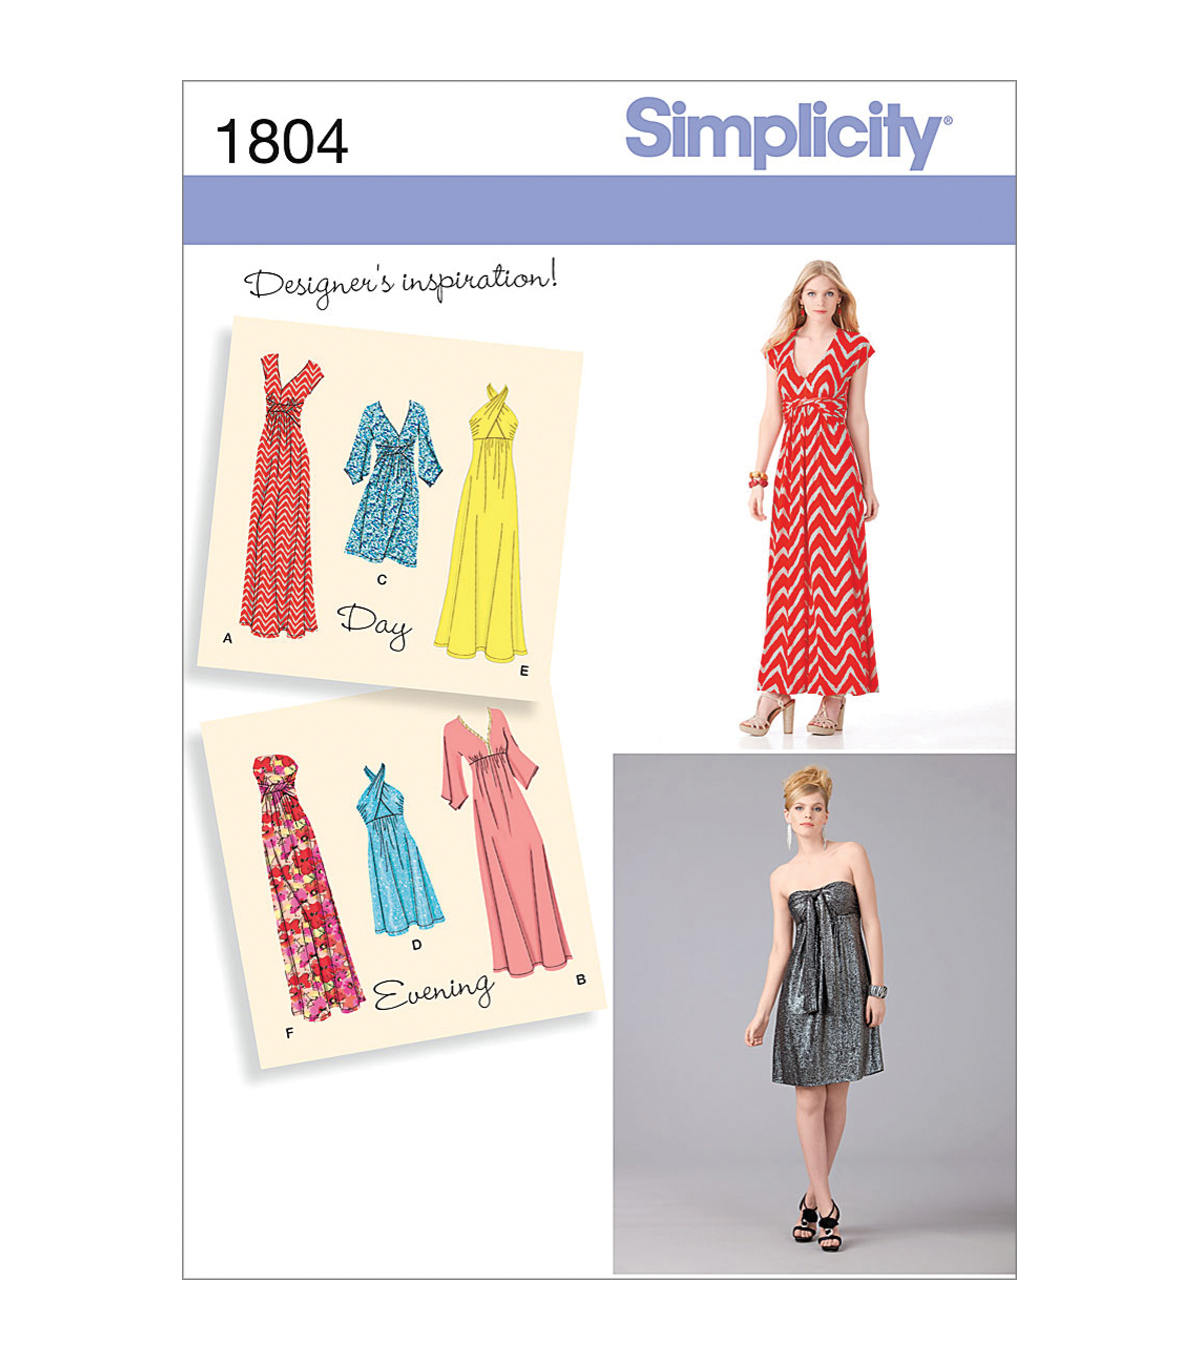 Simplicity Patterns Us1804R5-Simplicity Misses Special Occasion-14-16-18-20-22